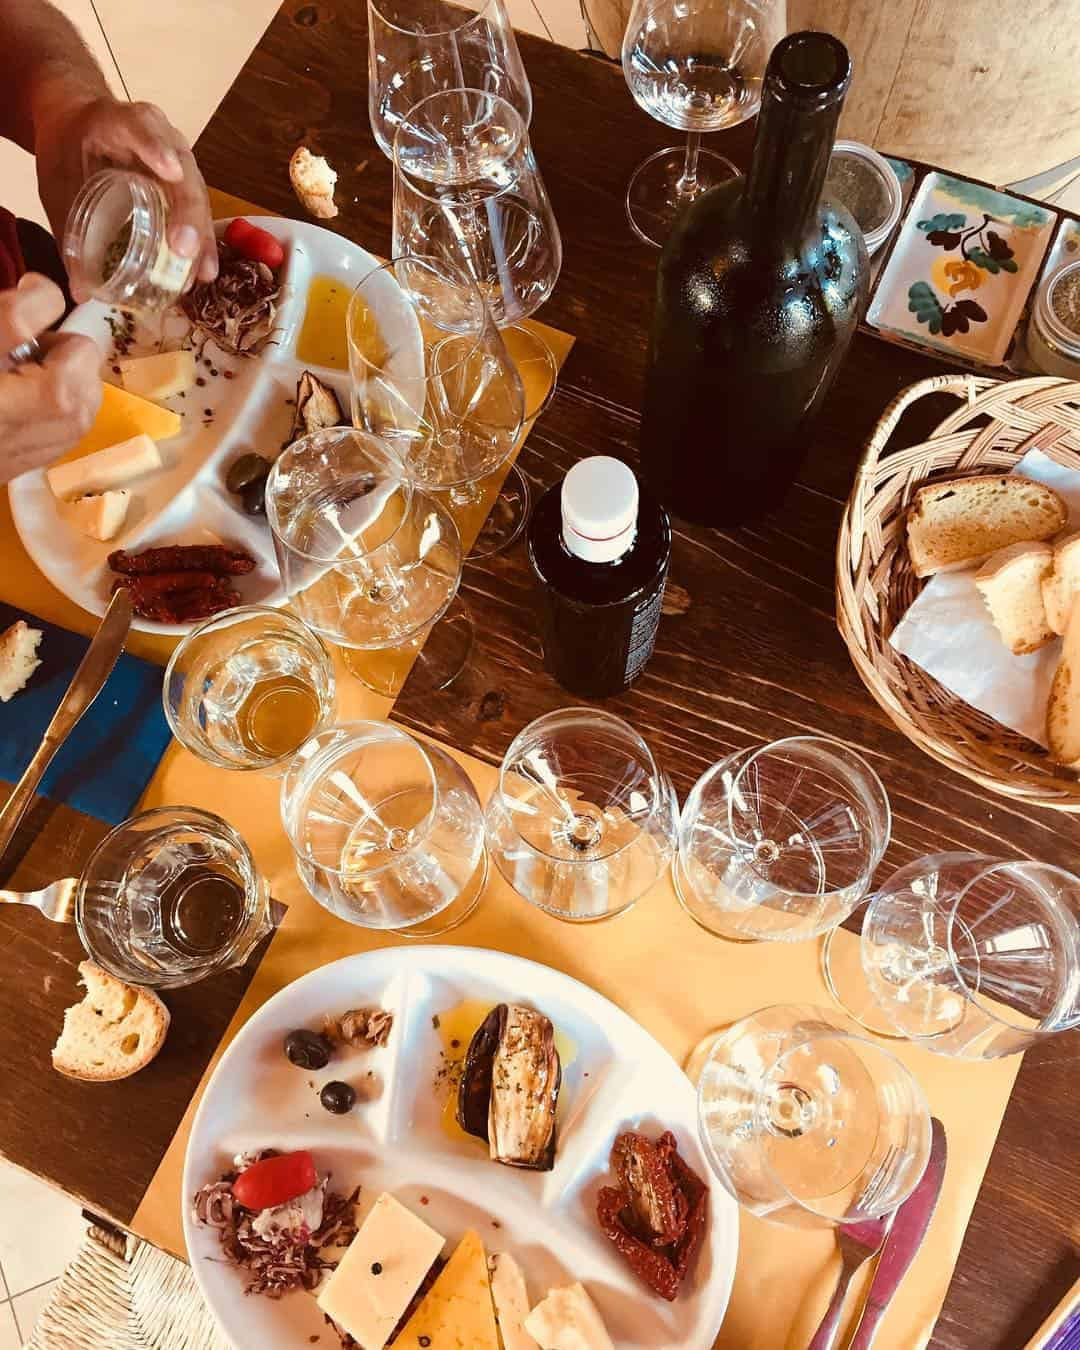 Things to do in Catania: Organise a local wine tasting